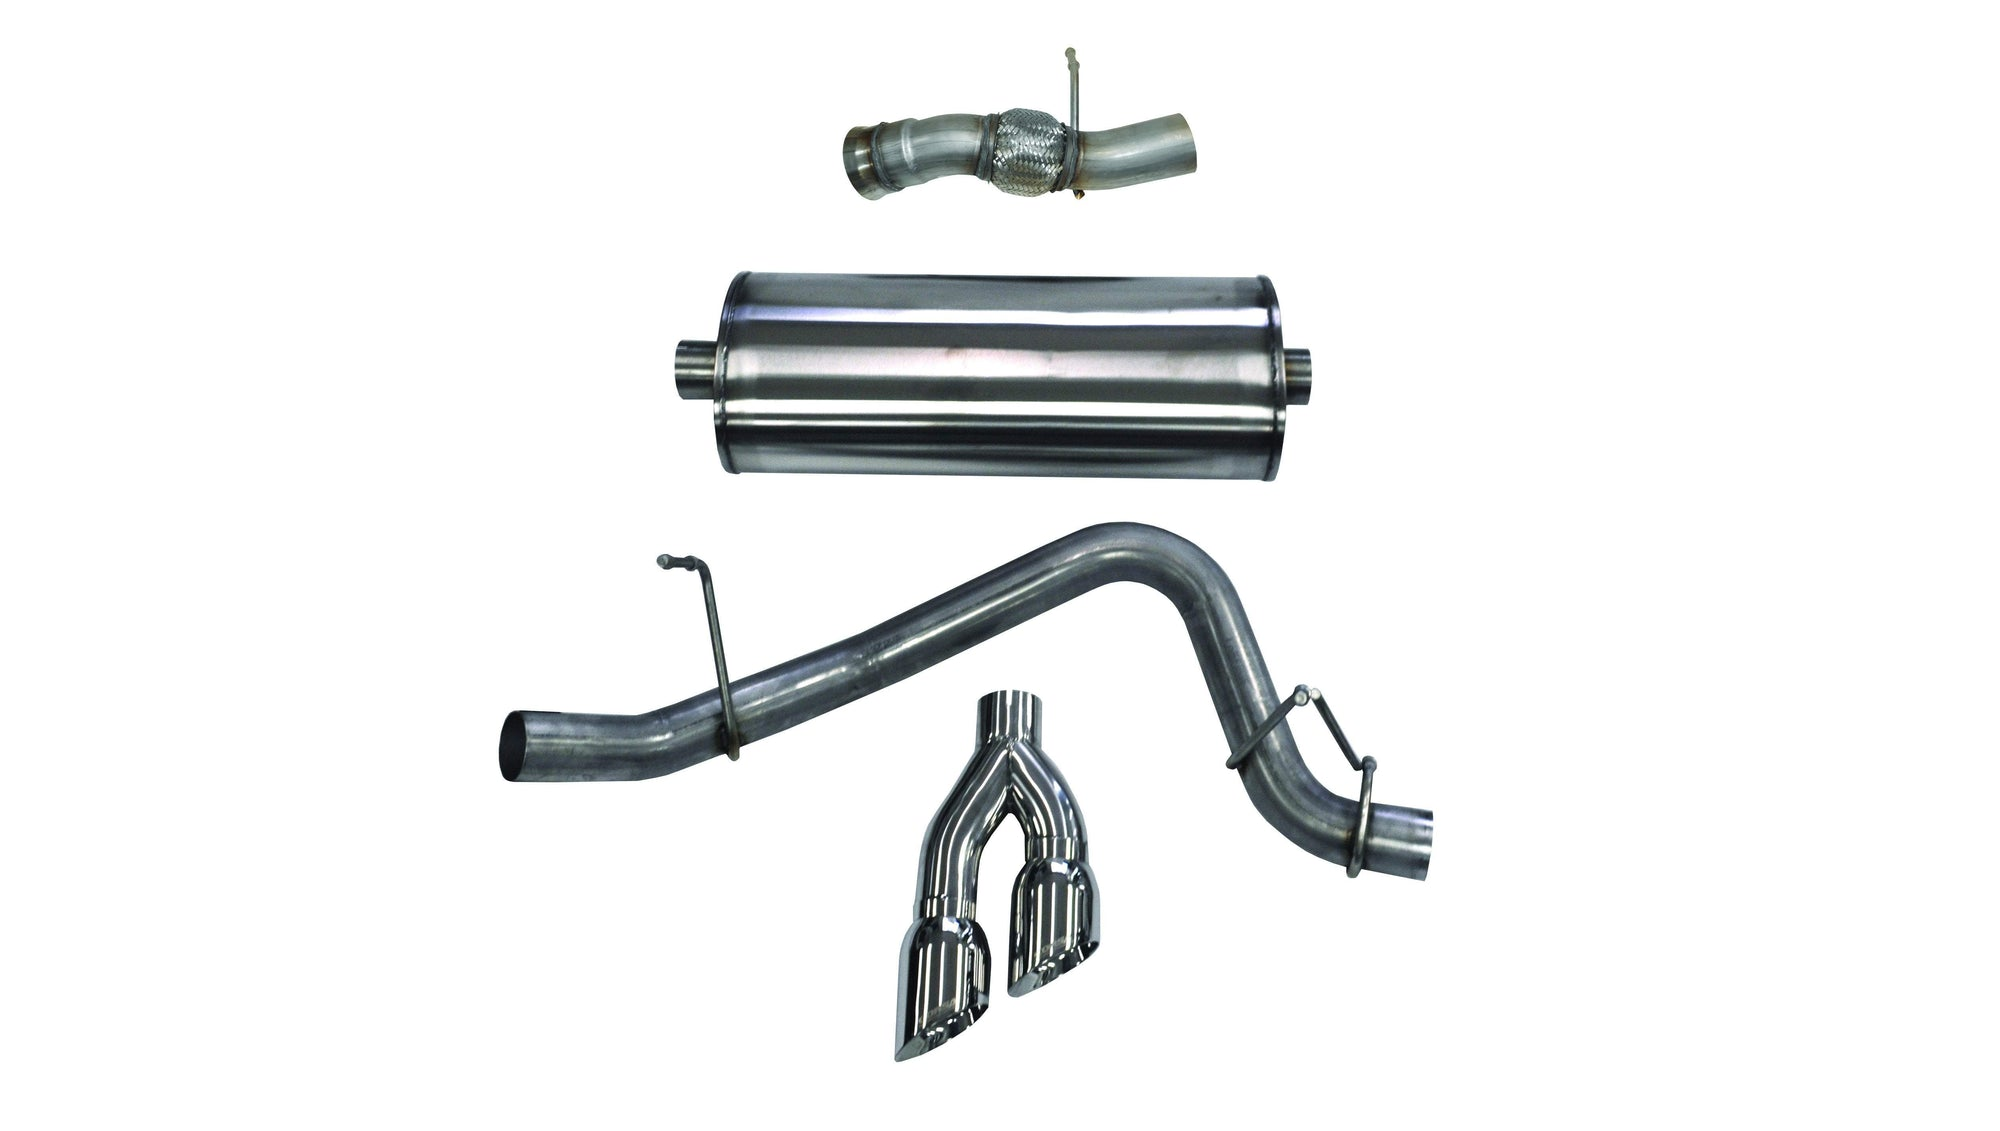 "CORSA PERFORMANCE Cat-Back Exhaust Polished / Sport / Single Side - Twin 4.0in 2015-2020 GMC Yukon Denali, Cadillac Escalade, 6.2L V8, 3.0"" Single Side Exit Catback Exhaust System with Twin 4.0"" Tip (14826) Sport Sound Level"